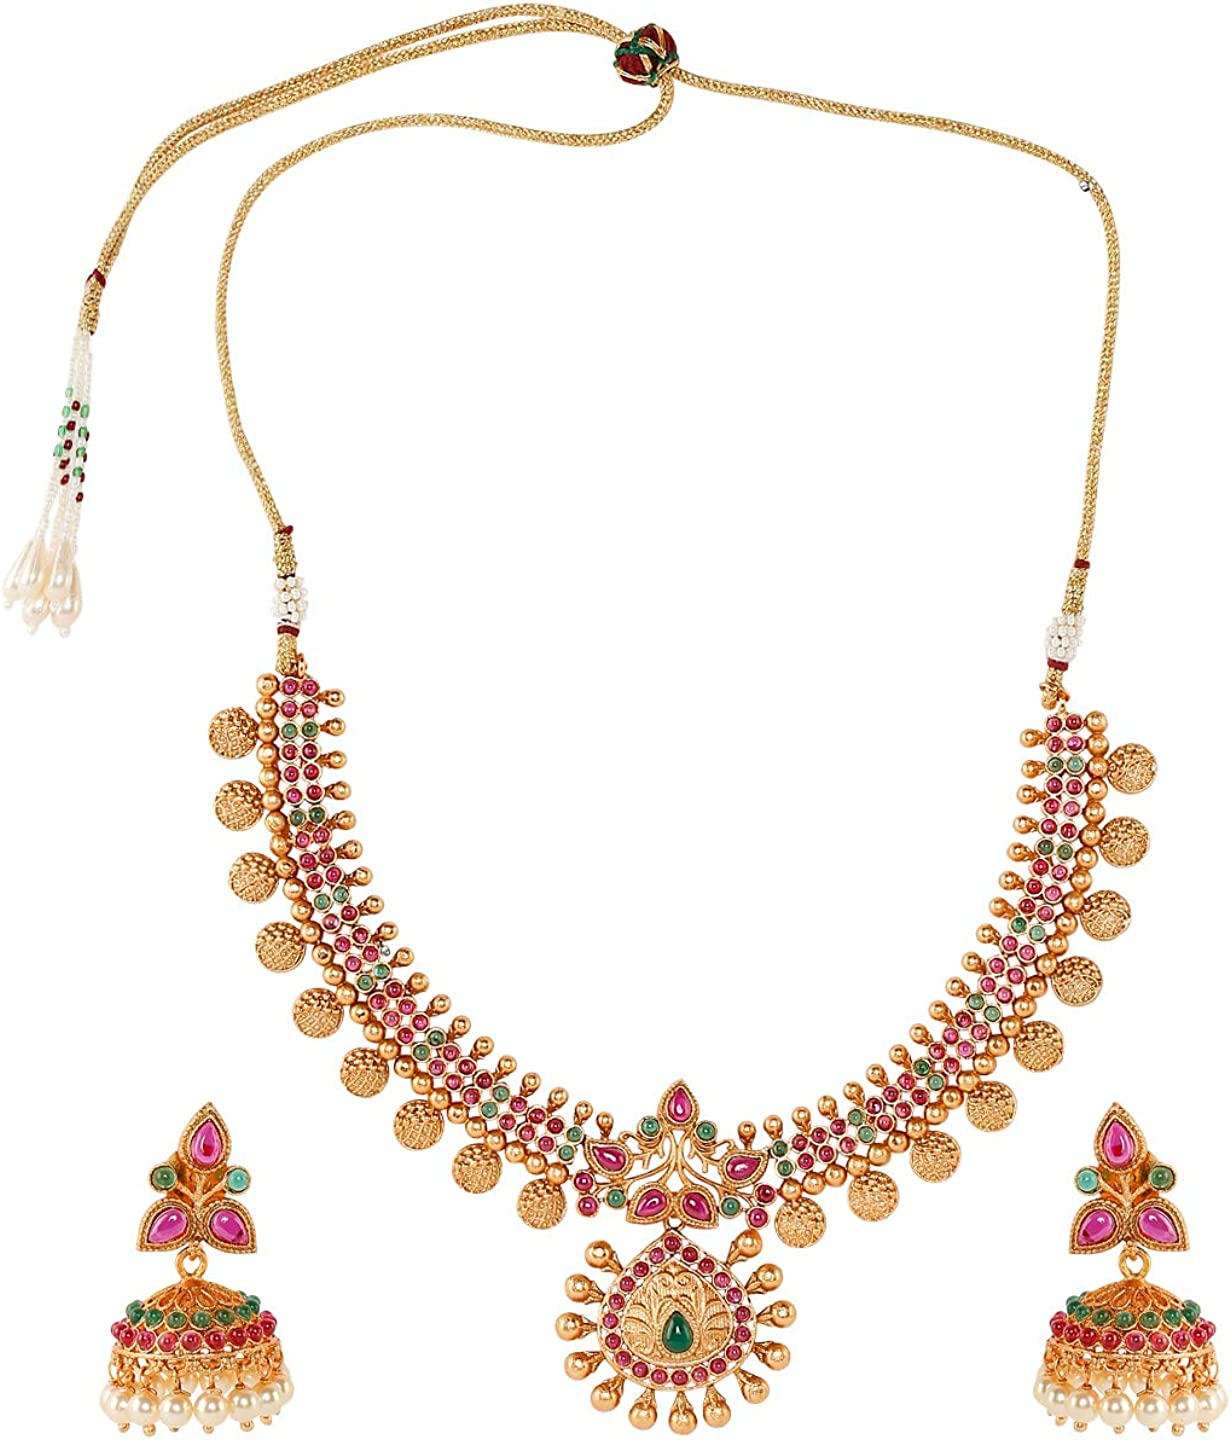 Bodha Handcrafted Antique Gold Plated Temple Jewellery Necklace with Matching Earring for Women (SJ_2804)